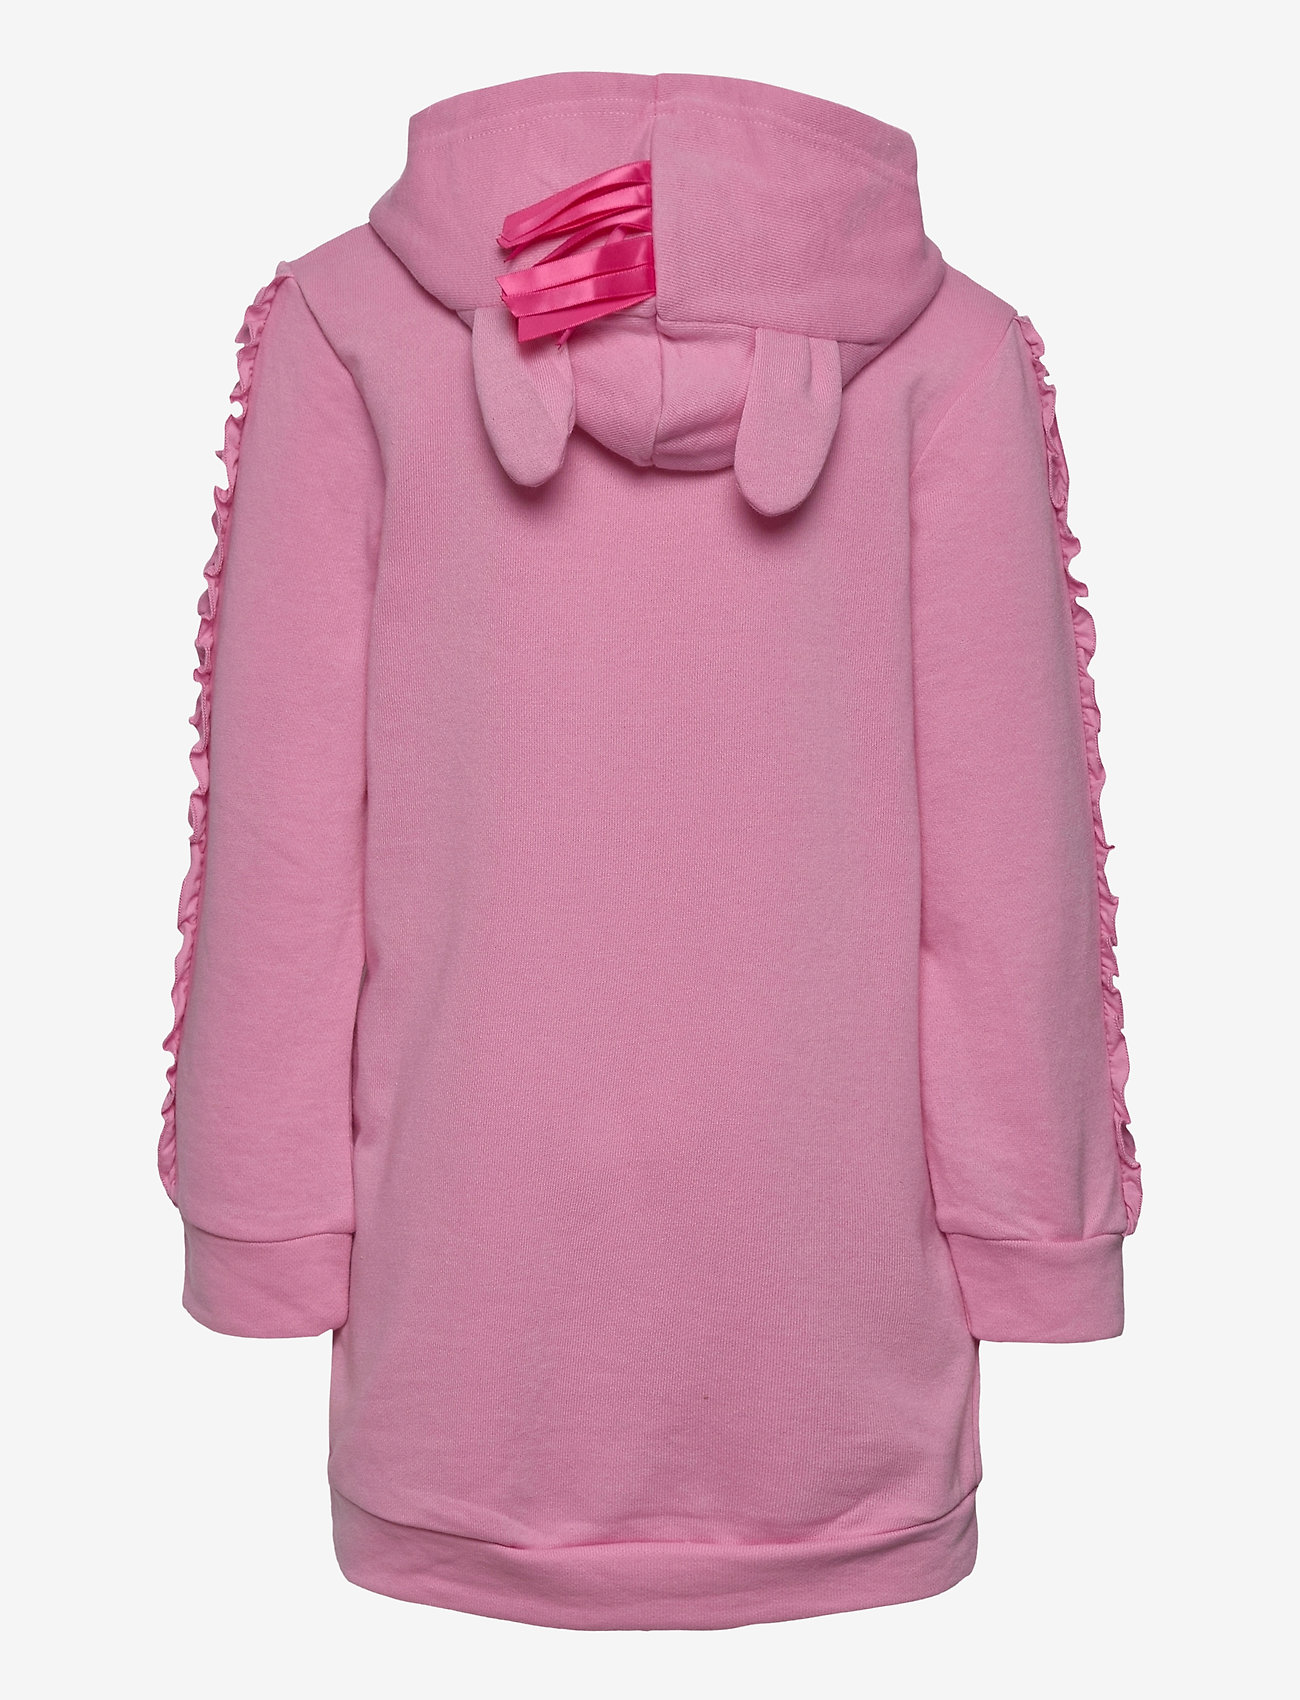 My Little Pony - DRESS WITH LONG SLEEVES - kapuzenpullover - pink - 1